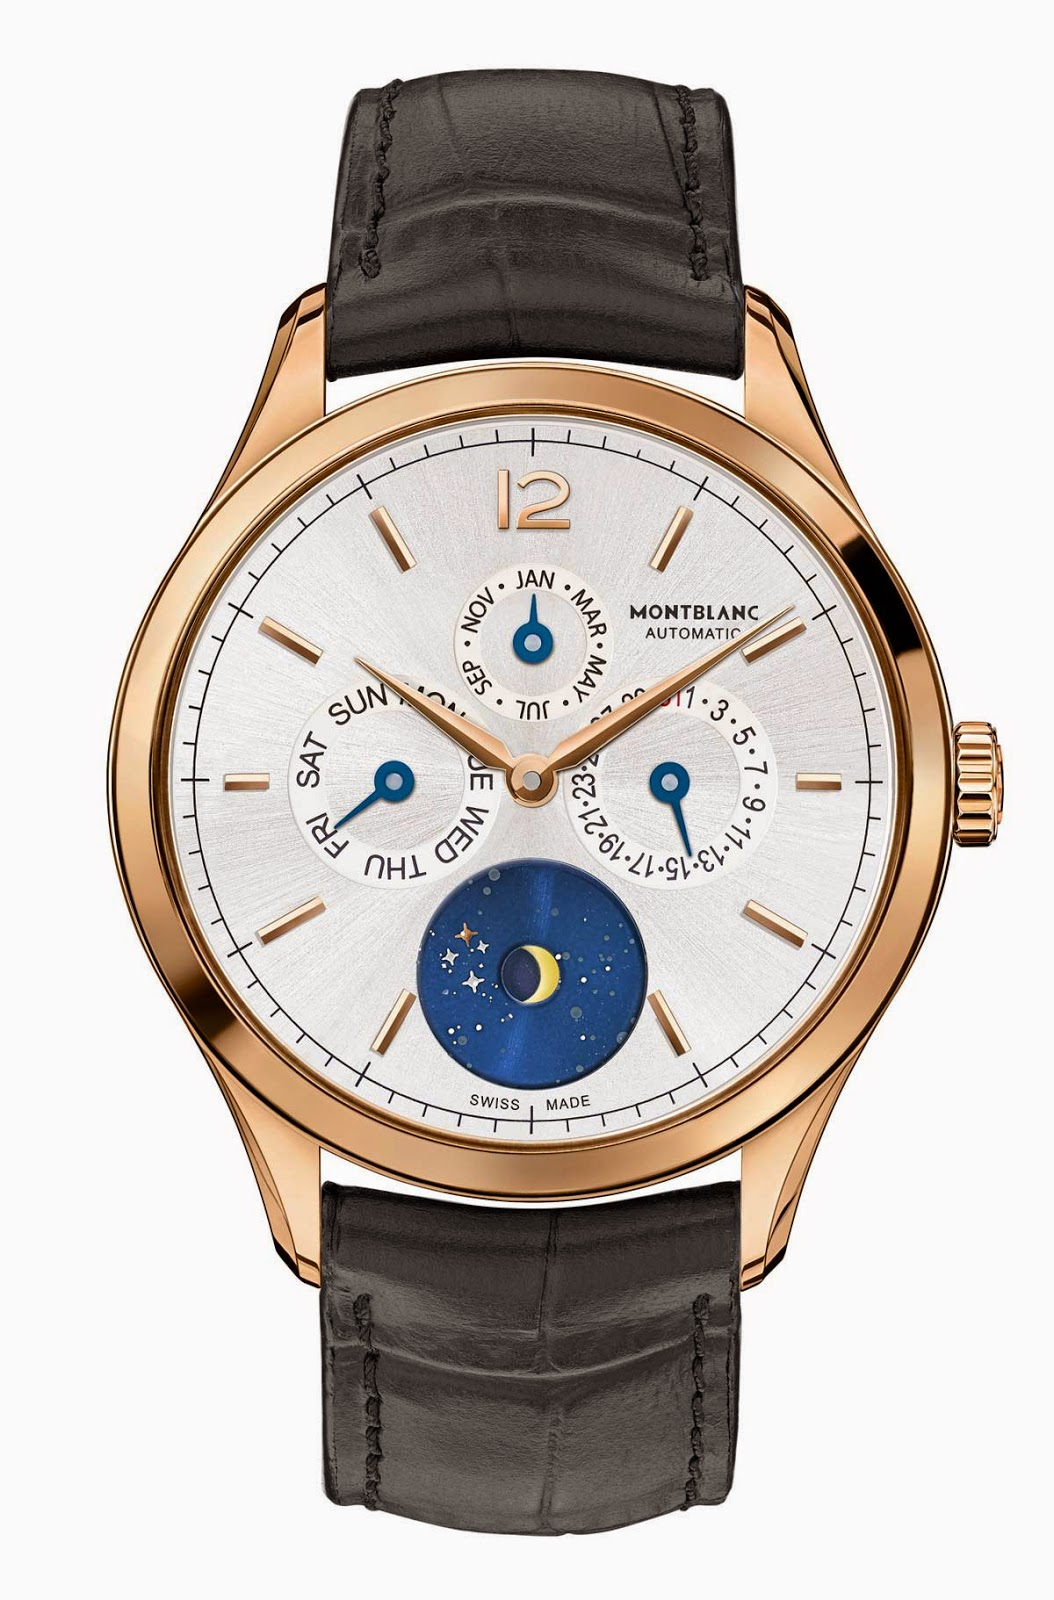 Sihh 2015 montblanc heritage chronom trie quanti me annuel vasco da gama time and watches for Vasco watches